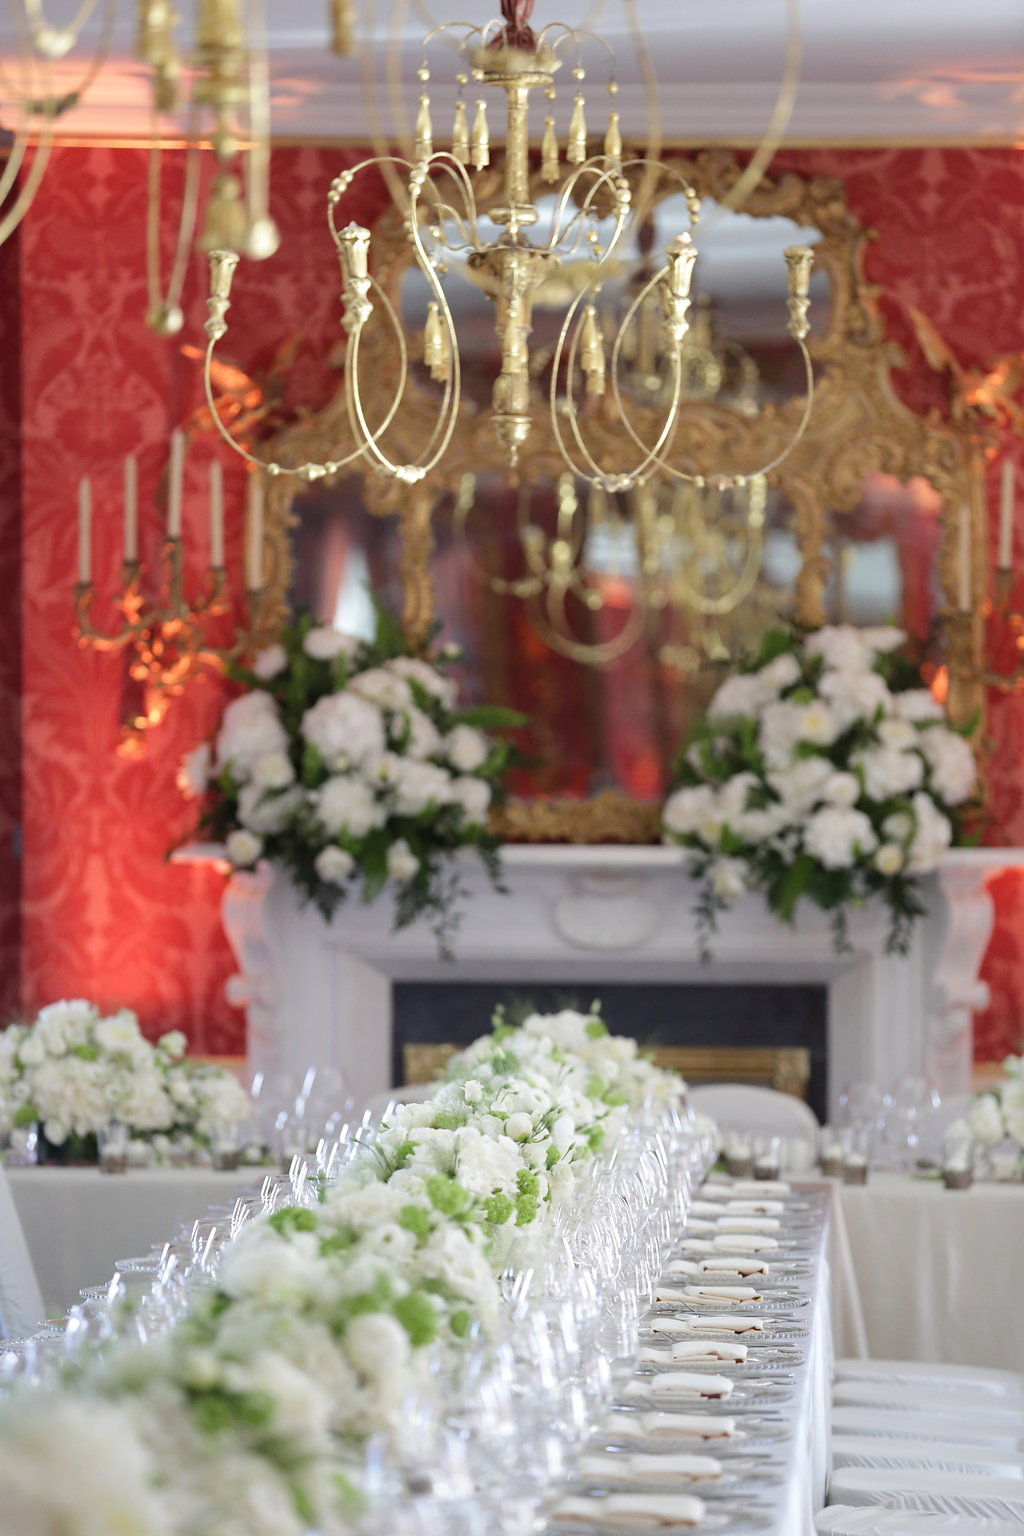 Wedding Stylist,Wedding Planner Ireland,Luxury Weddings, Wedding Decor,Ballyfin